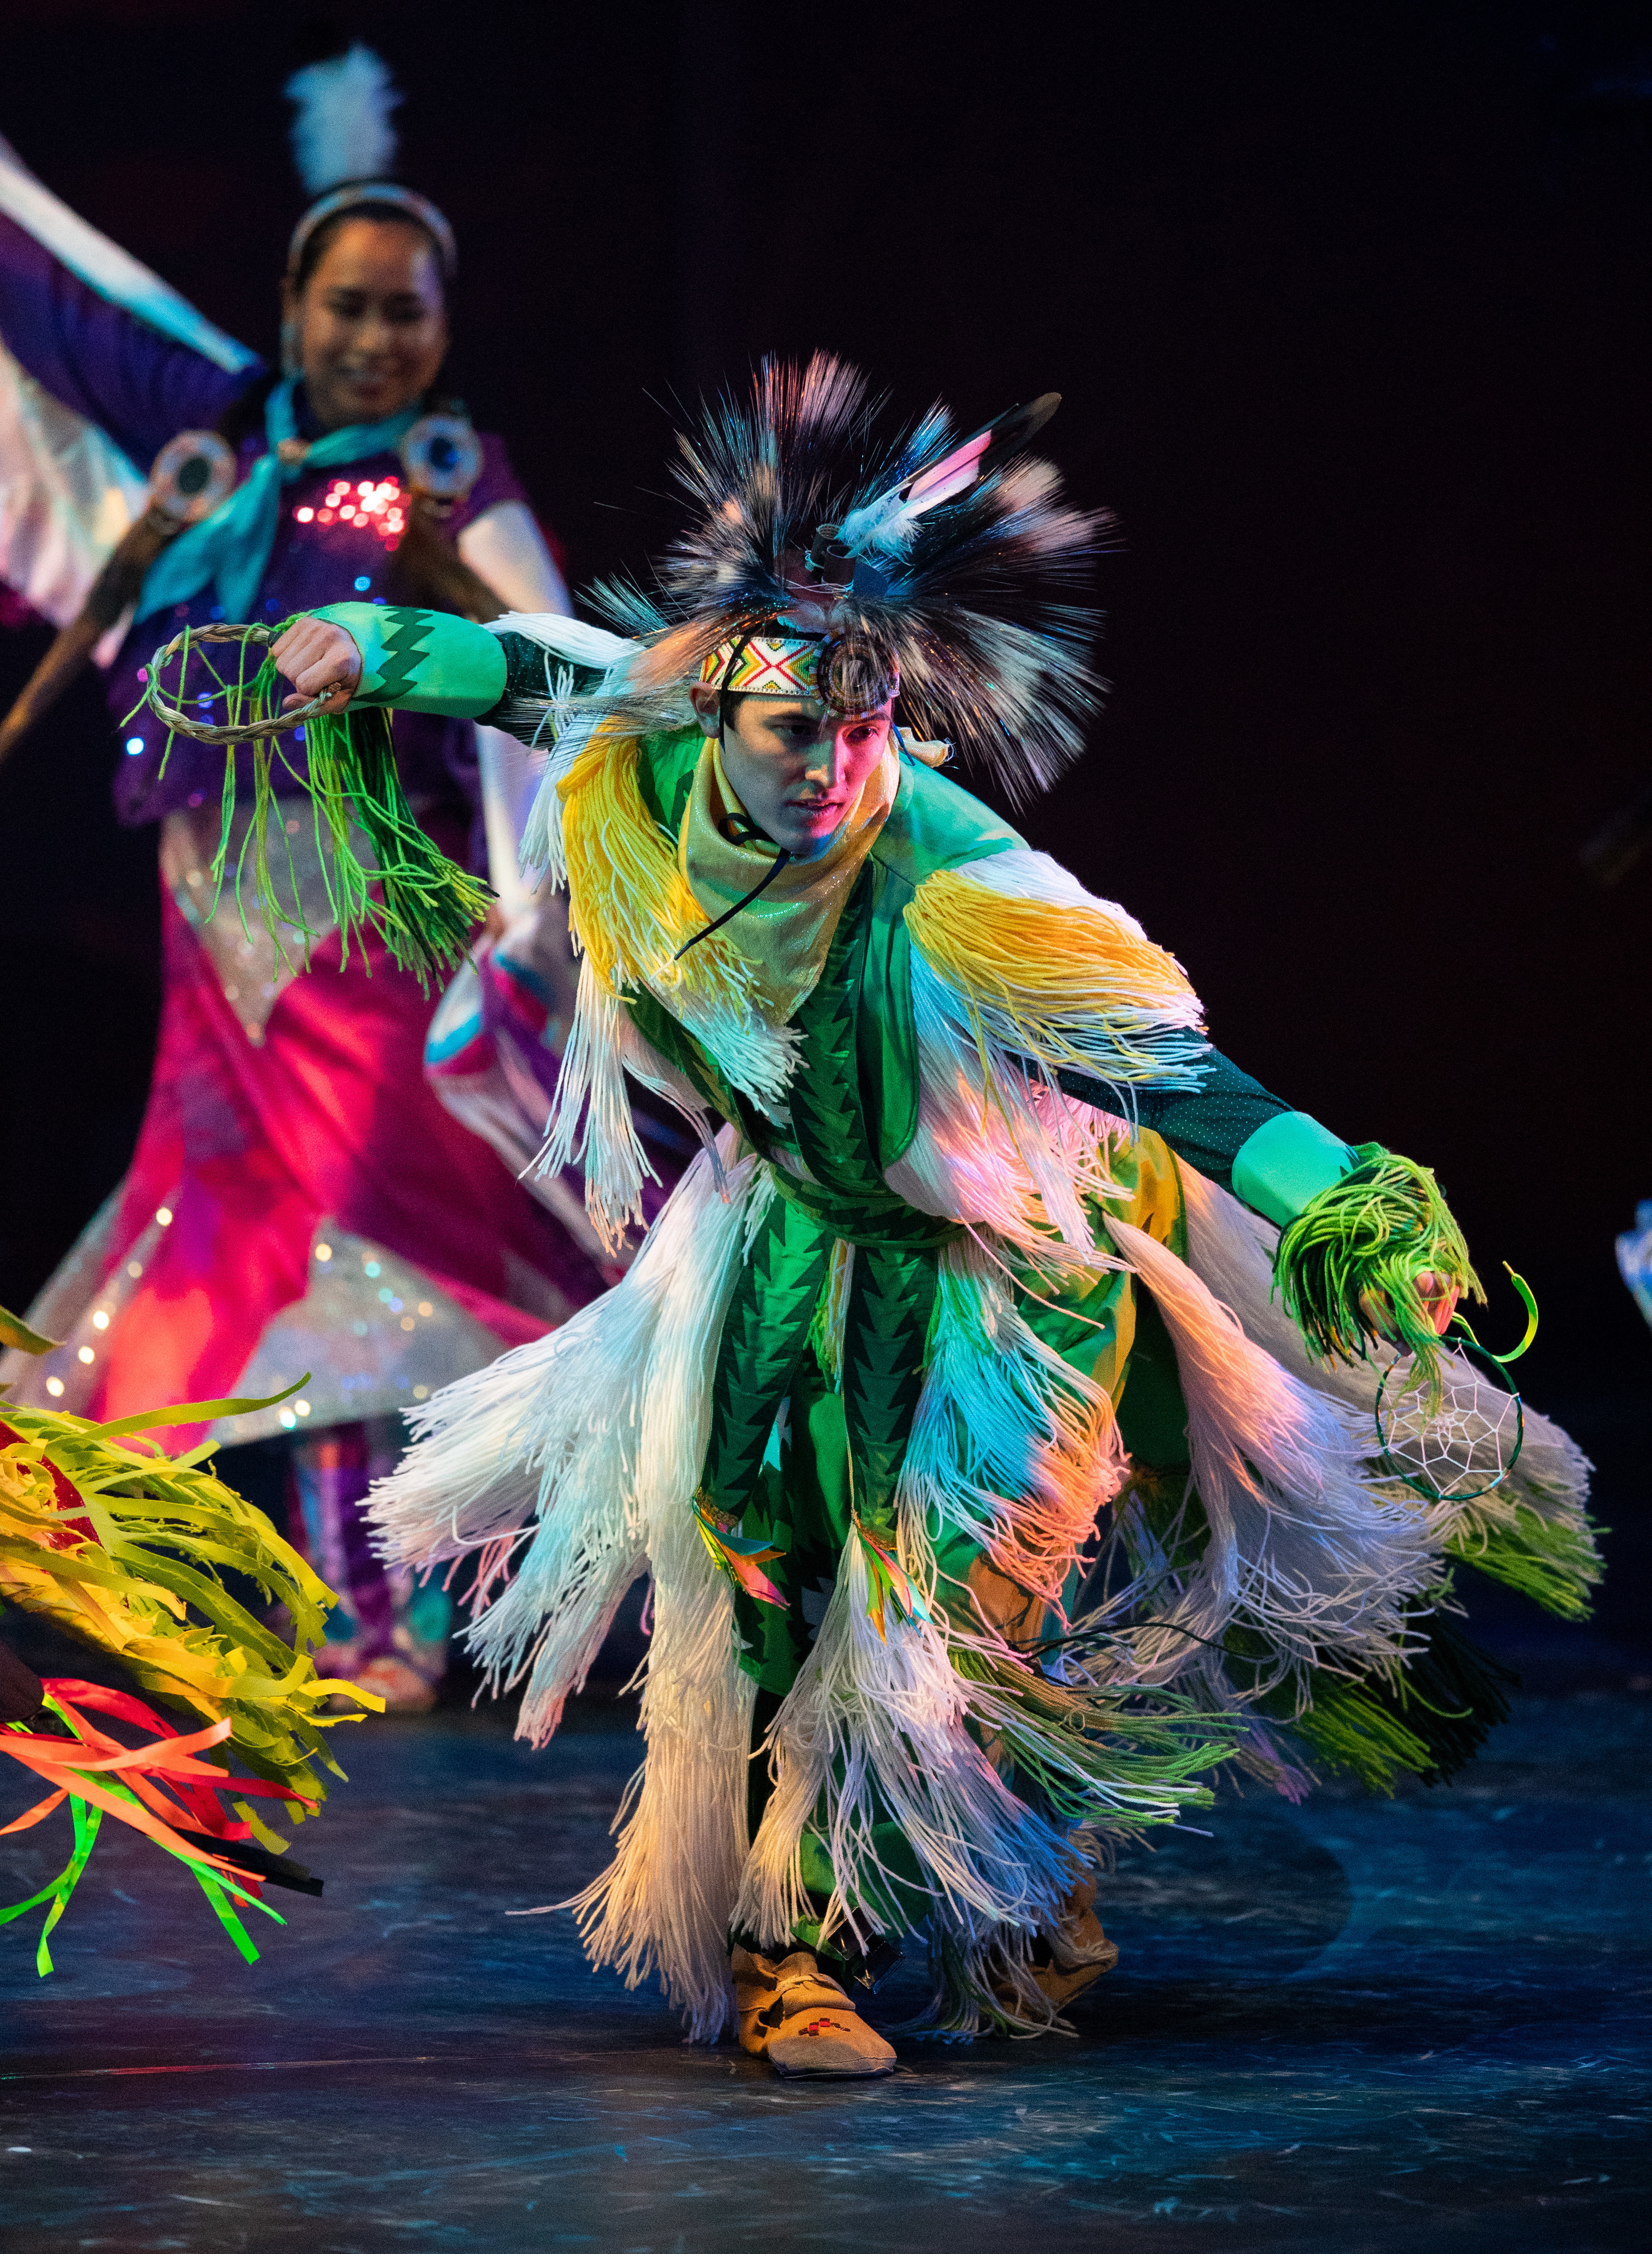 1905-33 1870  1905-33 China Spectacular Preview  BYU China Spectacular - Preview Performances at BYU.  May 9, 2019  Photo by Jaren Wilkey/BYU  © BYU PHOTO 2019 All Rights Reserved photo@byu.edu  (801)422-7322